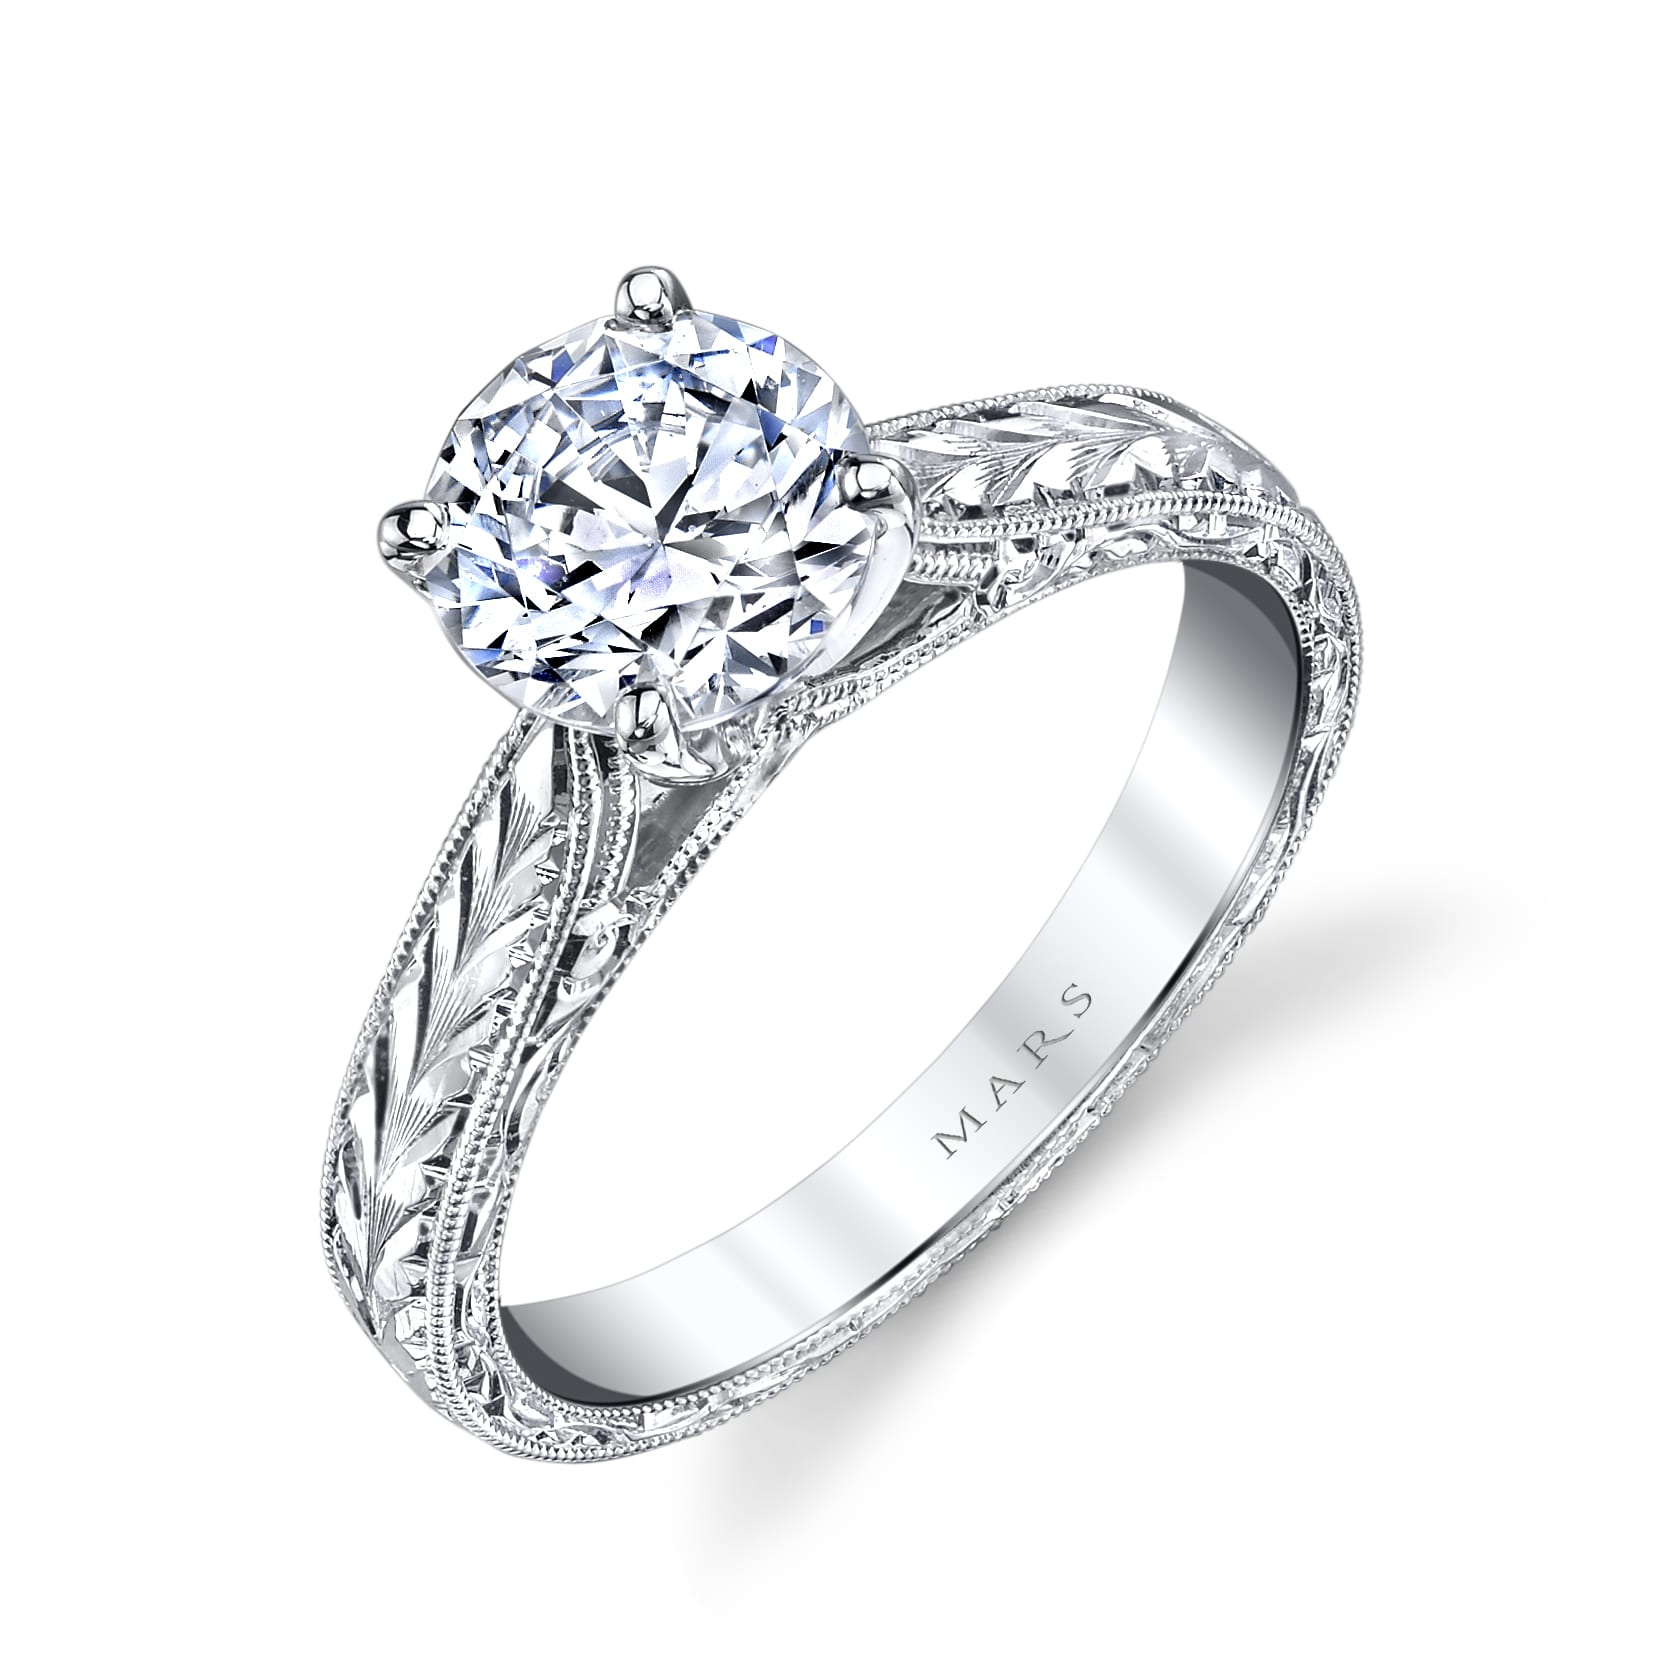 Solitaire Engagement RingStyle #: MARS 10860HE